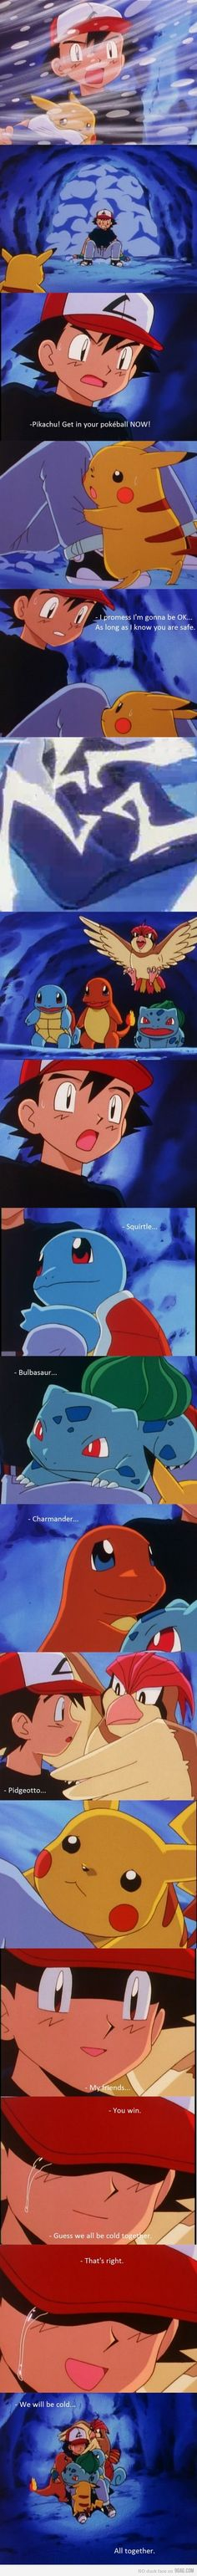 I just, I can't explain how much I love Pokemon :')